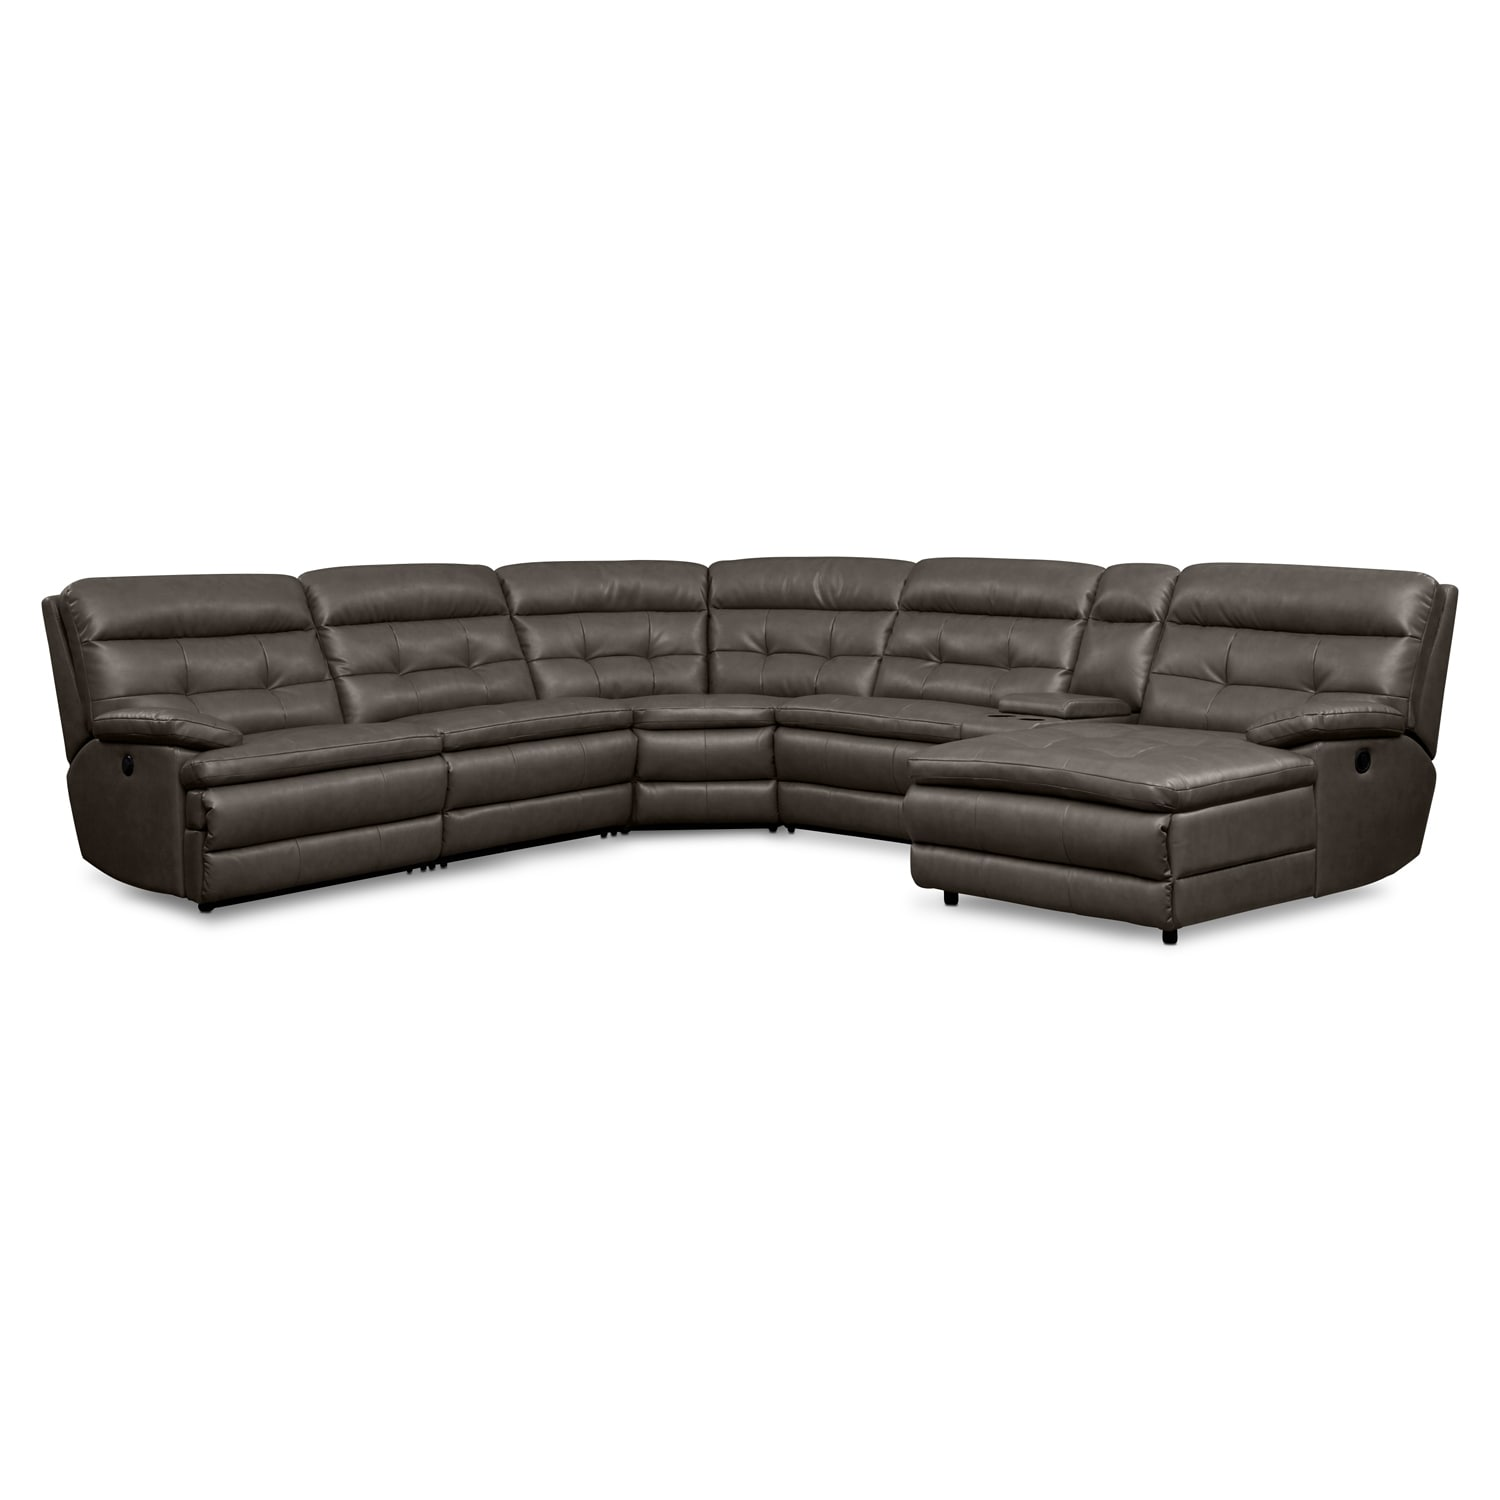 Modern Leather Sleeper Sofa